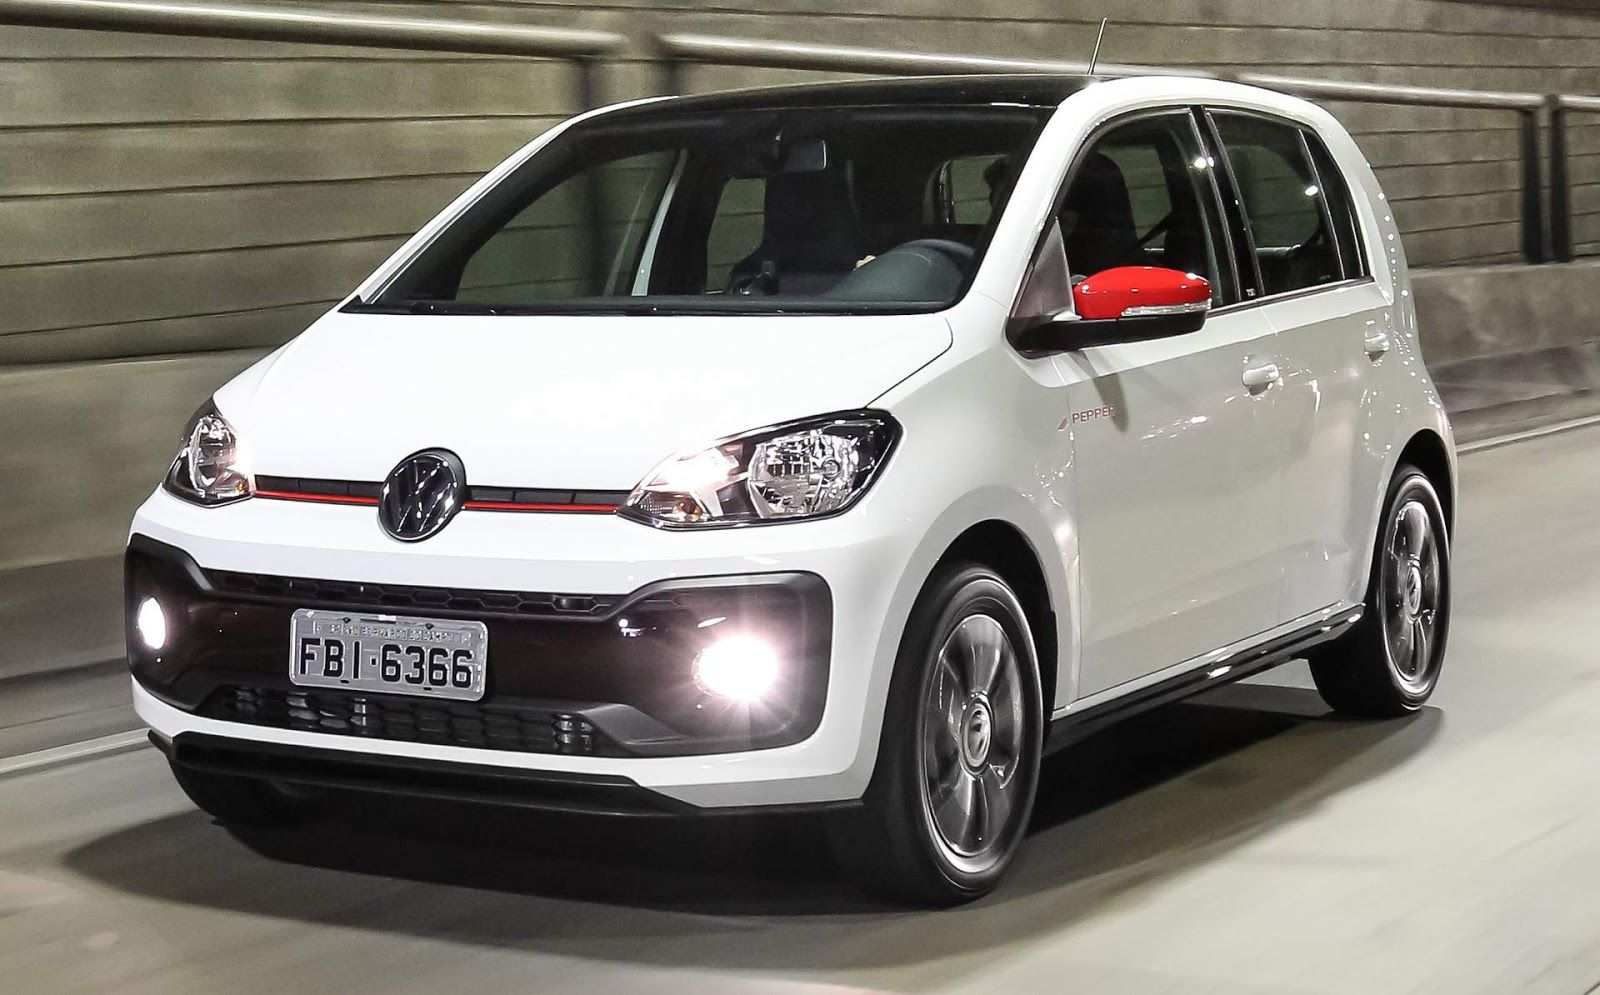 77 A Vw Up Pepper 2019 Release Date And Concept